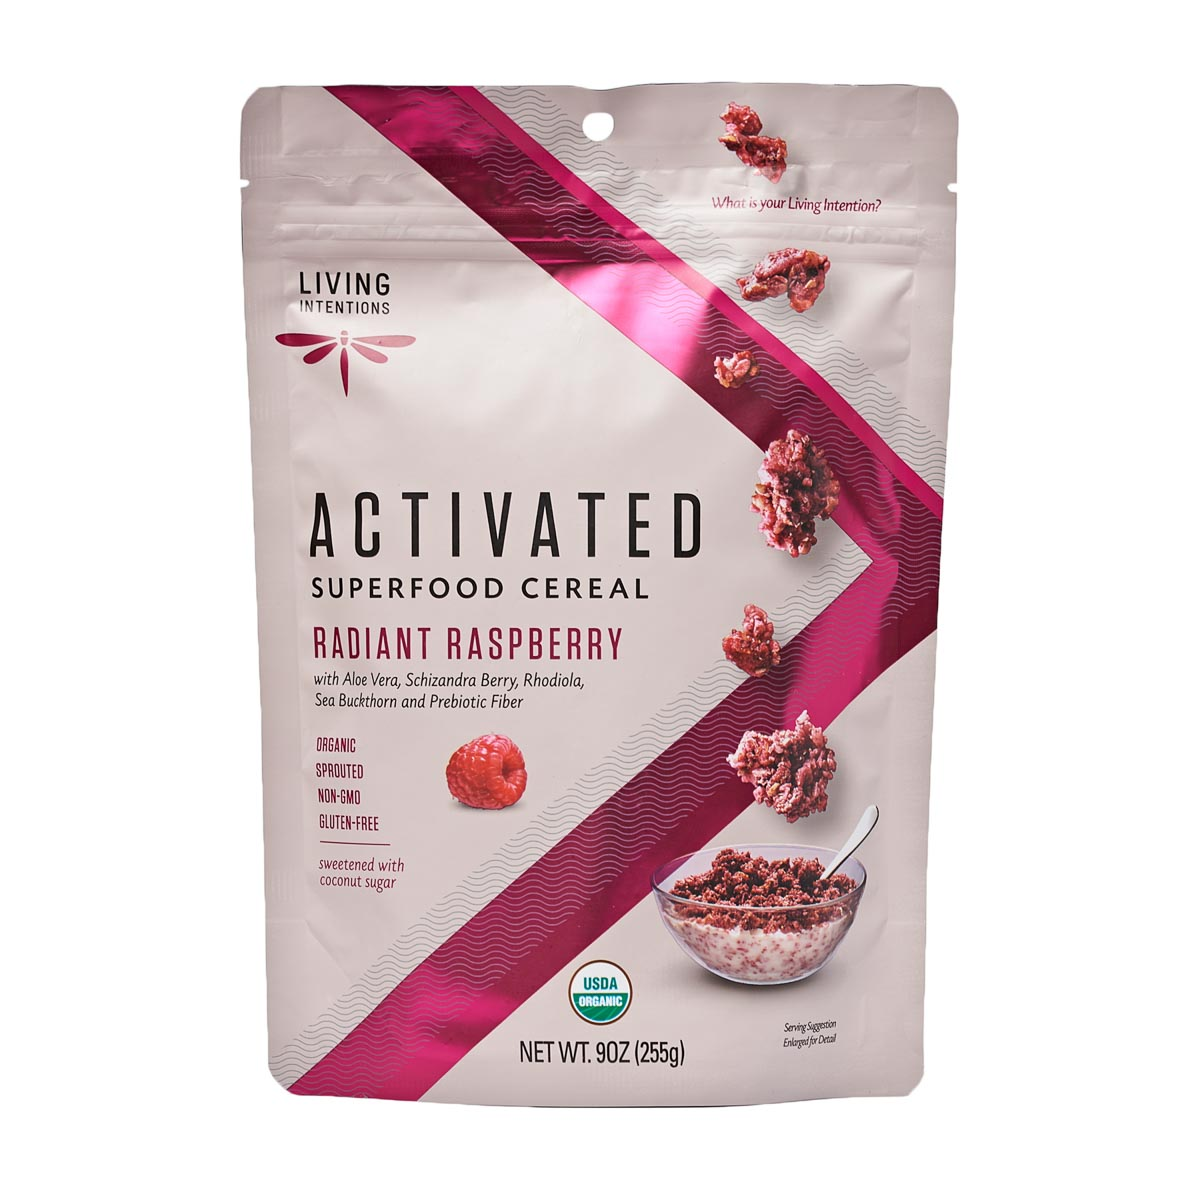 Super Food Cereal - Radiant Raspberry (255g) - Living Intentions